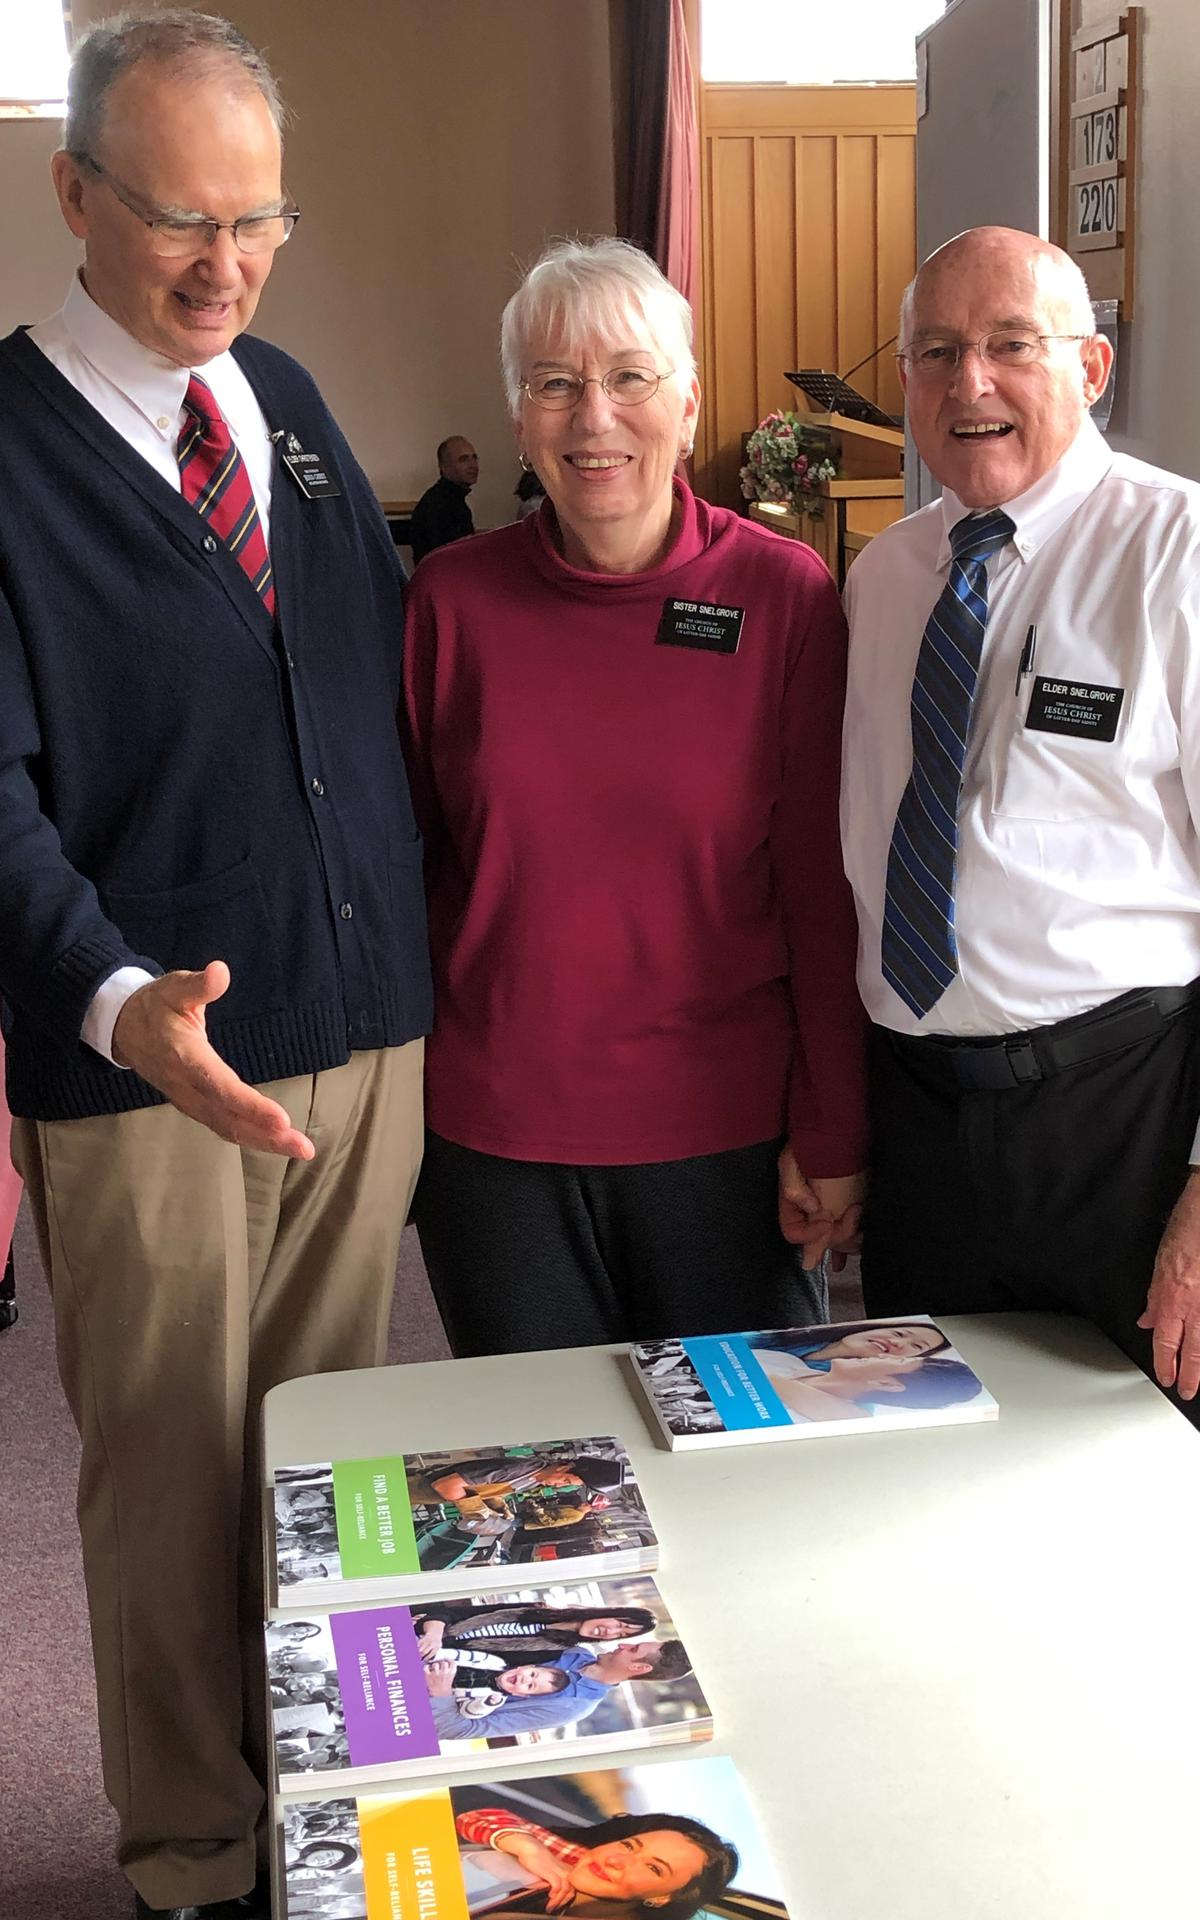 Elder Christensen from Peckham Friendship Centre, Sister and Elder Snelgrove, Self-Reliance Senior Missionaries